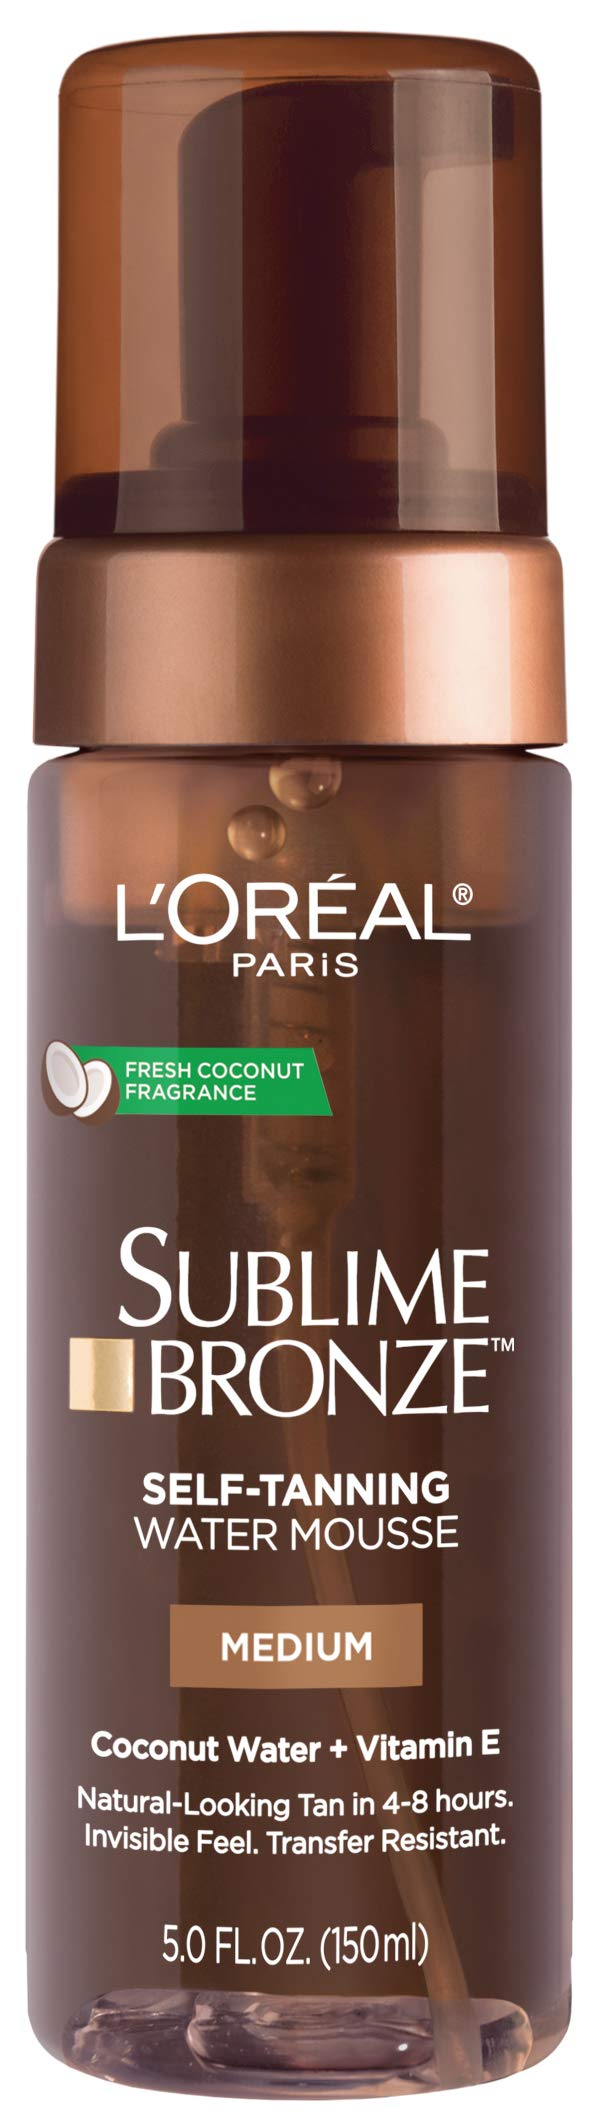 L'Oreal Paris Skin Care Sublime Bronze Hydrating Self-Tanning Water Mousse, 5 Fluid Ounce by L'Oreal Paris